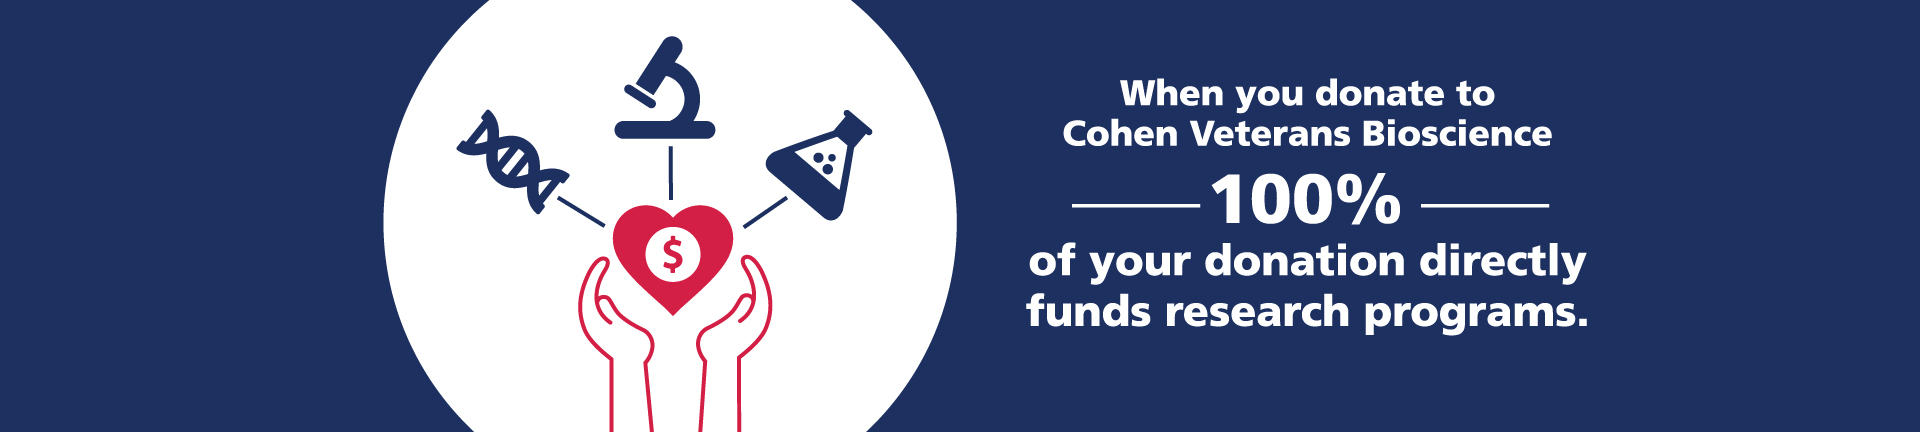 When you donate to Cohen Veterans Bioscience, 100% of your donation directly funds research programs